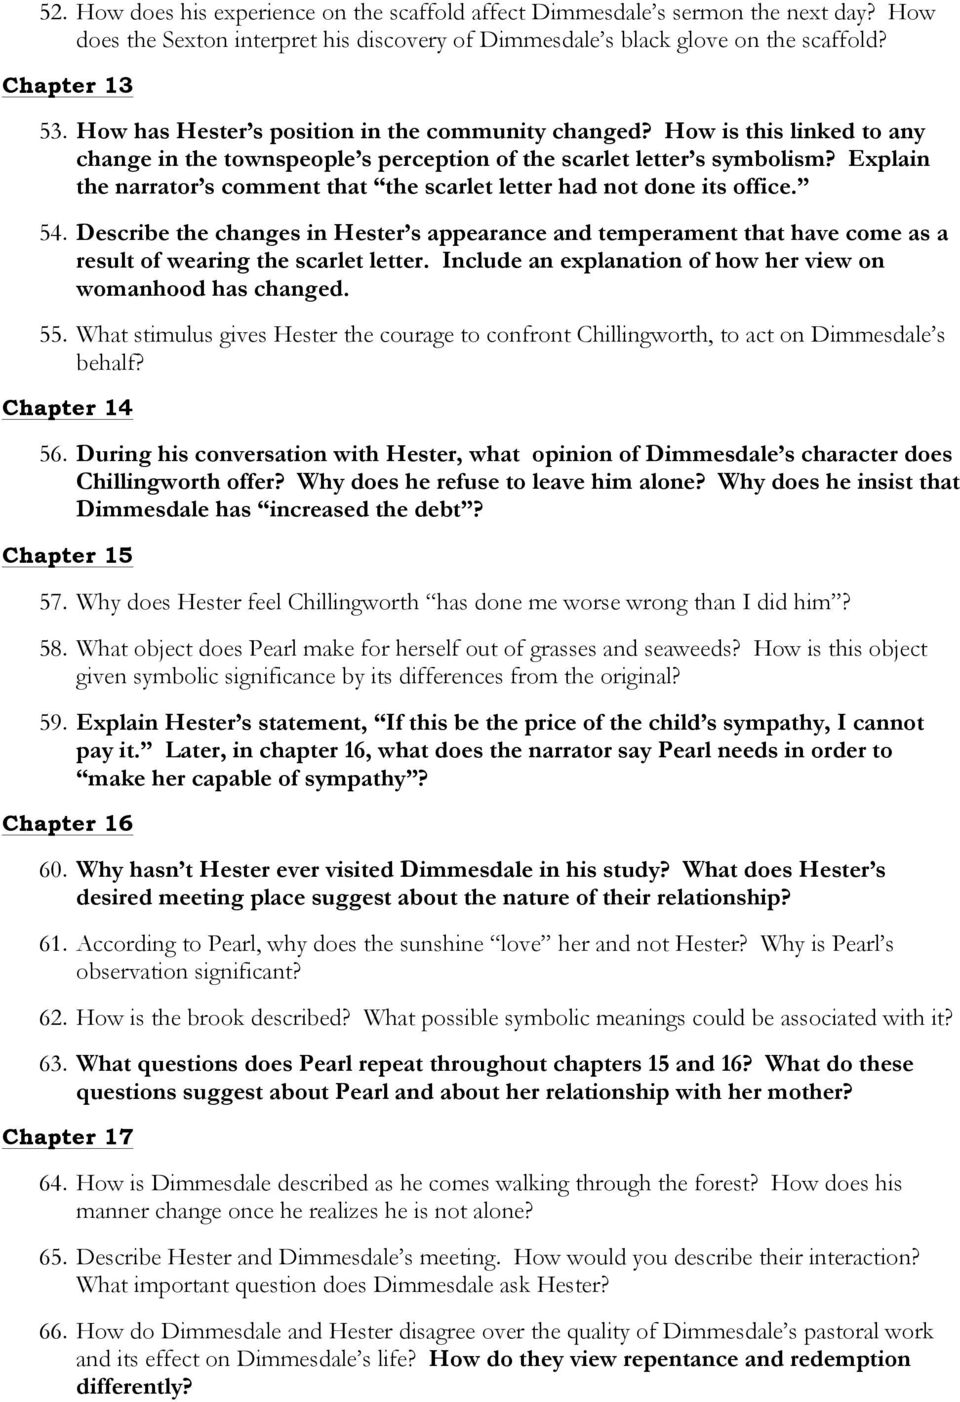 The Scarlet Letter. I. Reading Journal Assignment. II. Group